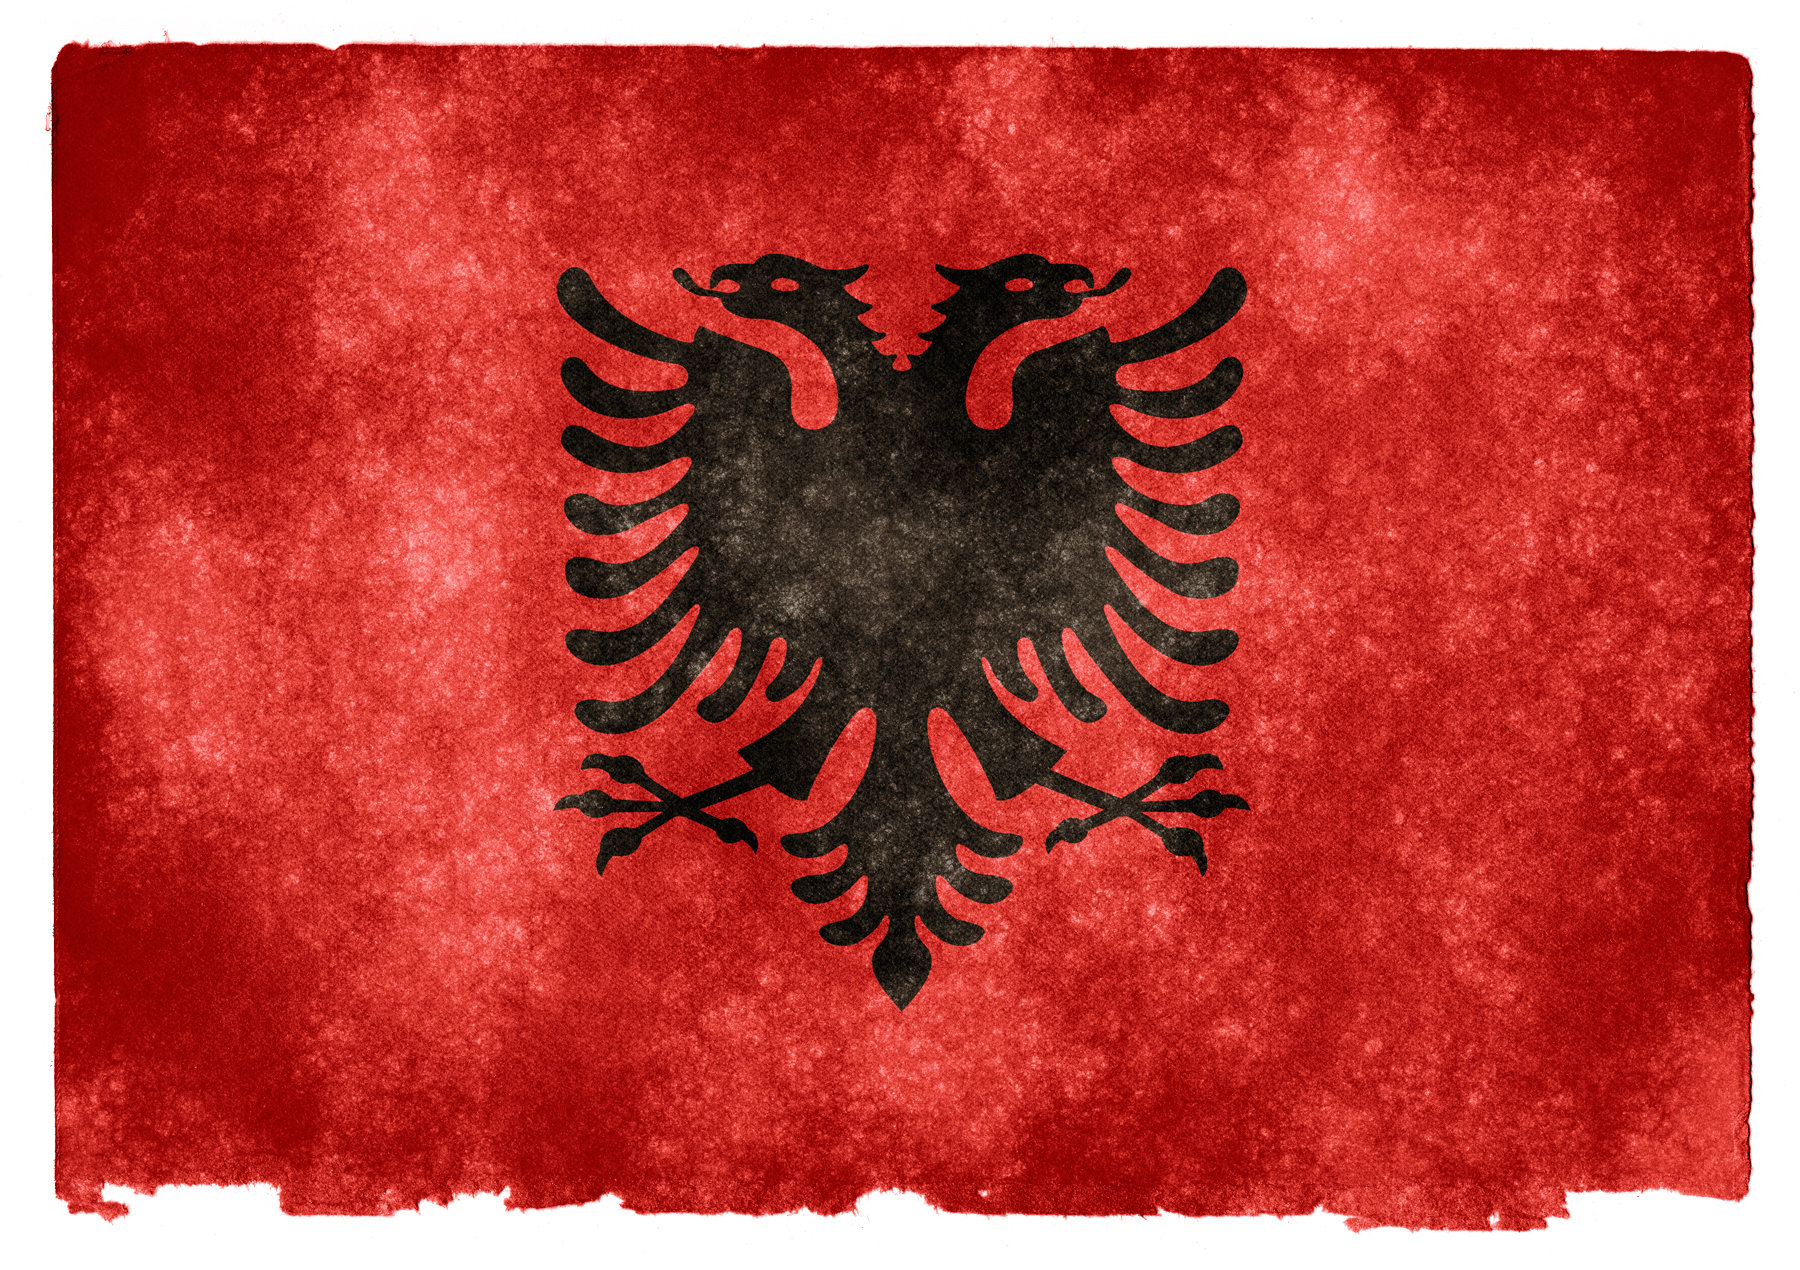 Albania Grunge Flag, Aged, Picture, Grungy, Identity, HQ Photo